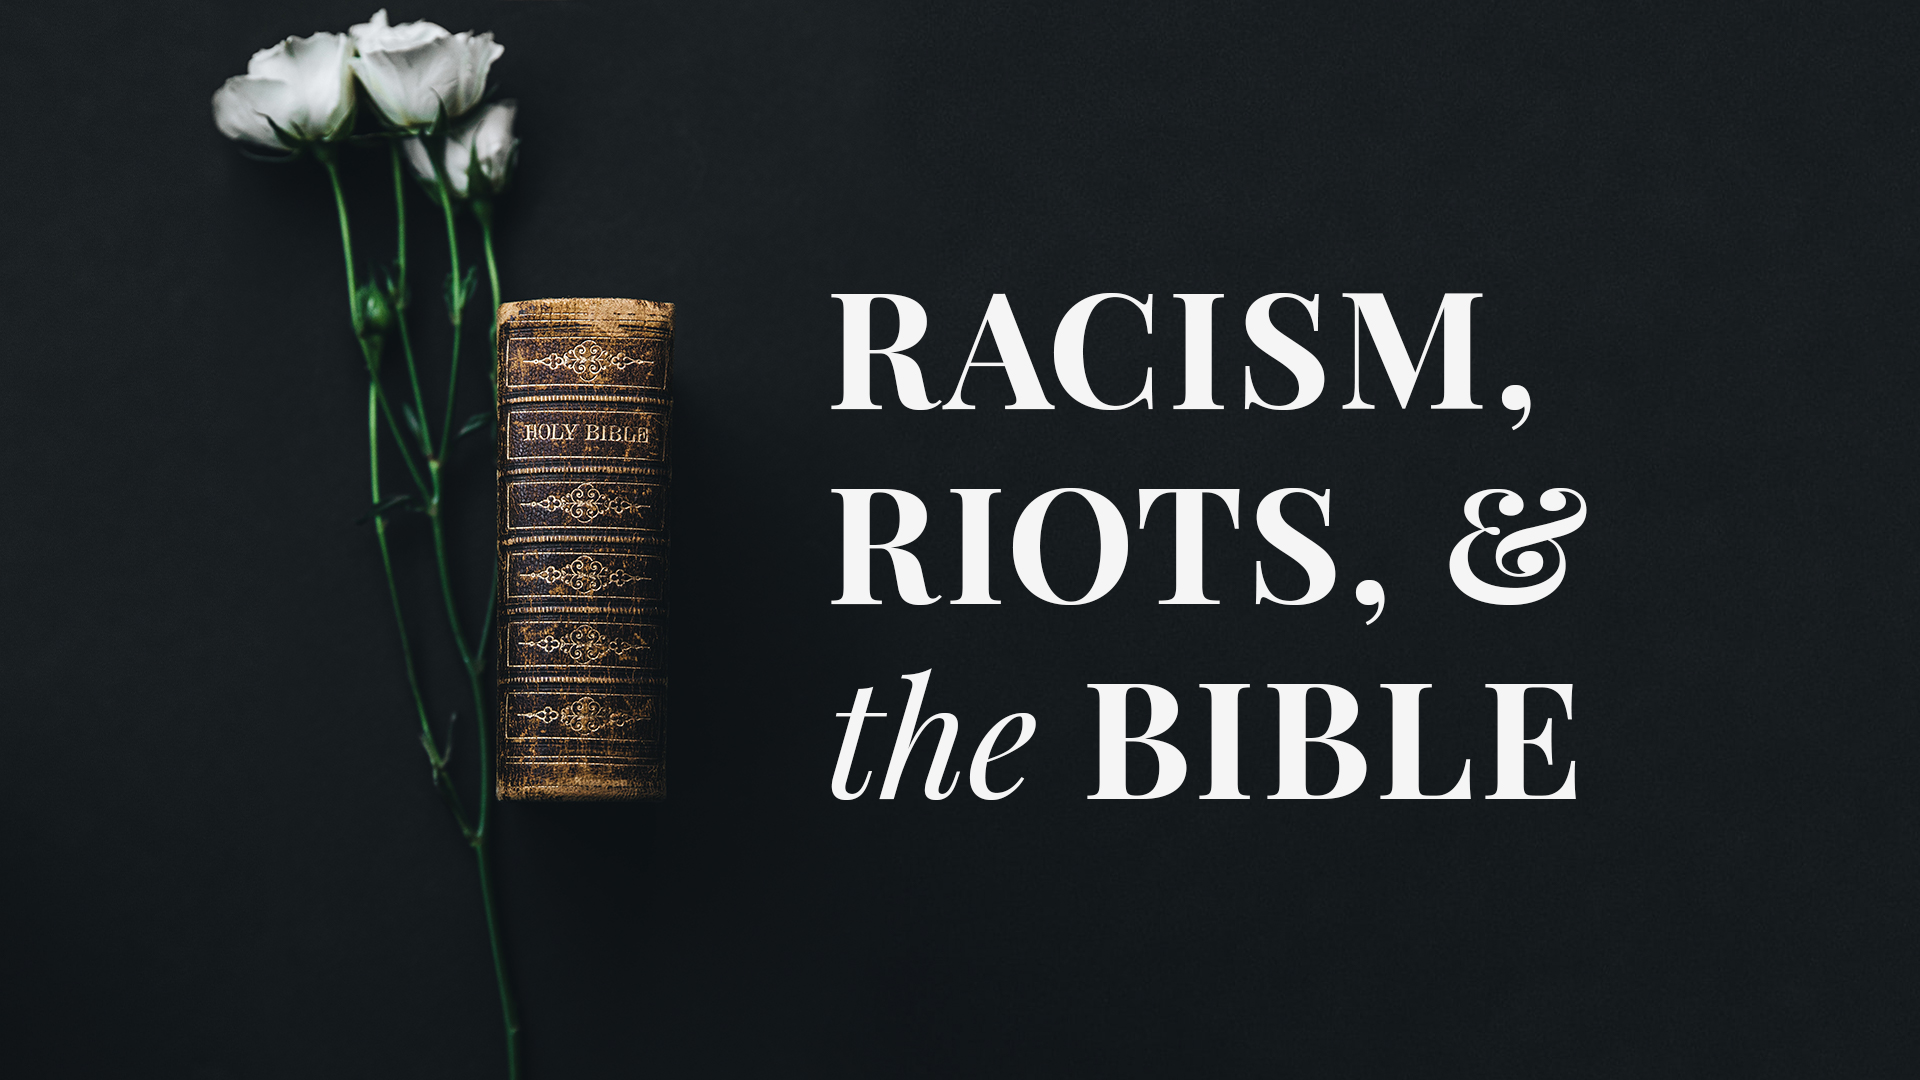 Racism Riots & The Bible 3